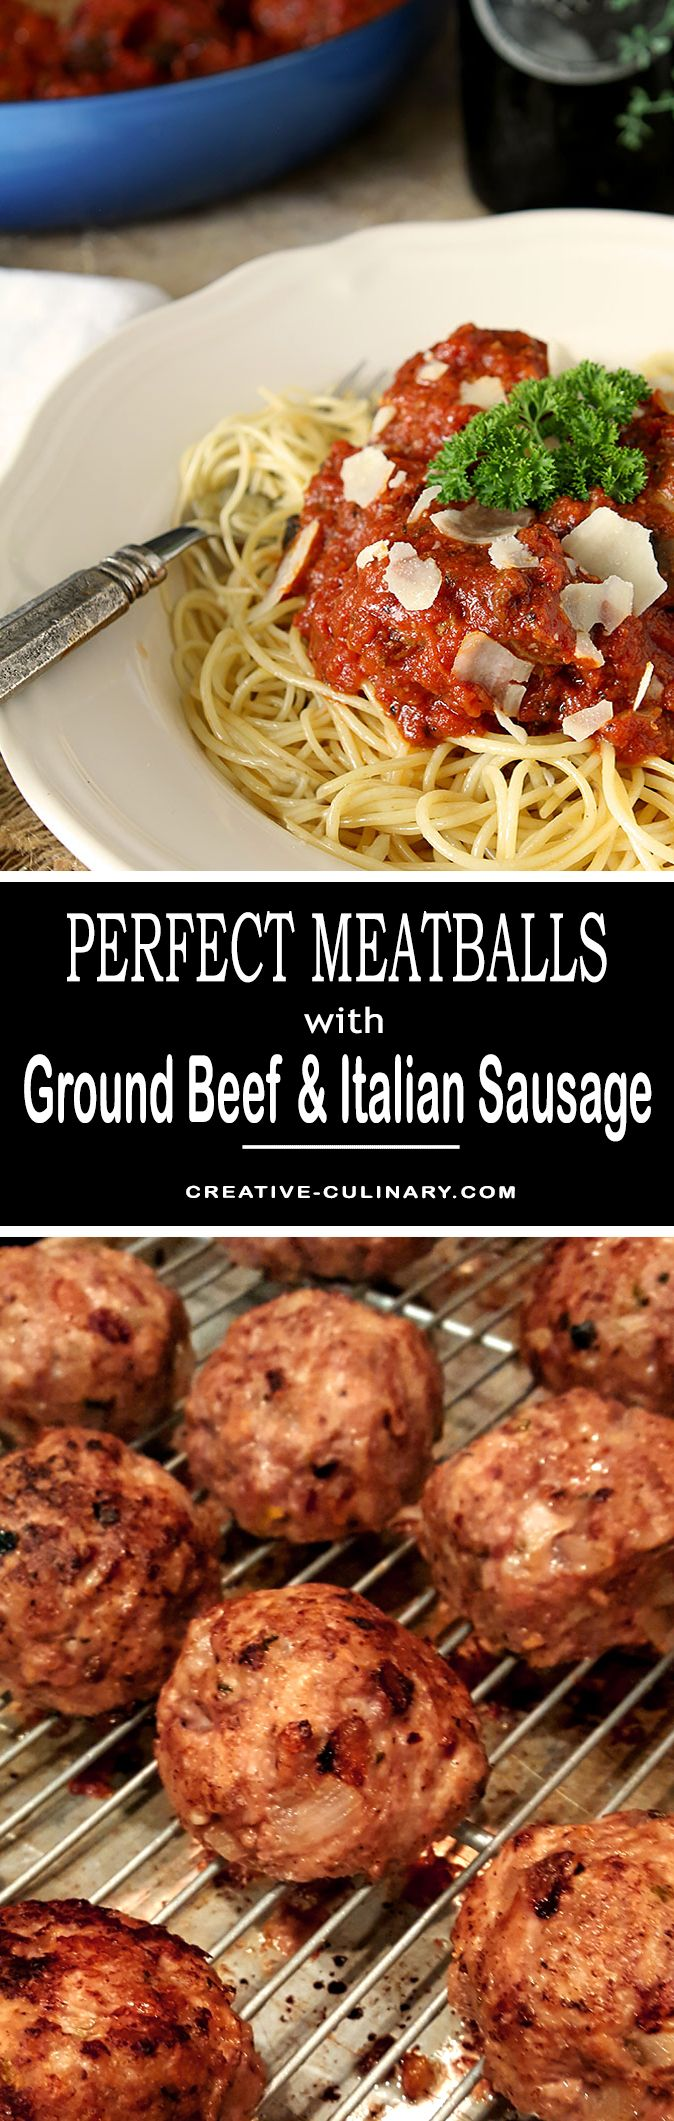 These Really Are Perfect Meatballs With Ground Beef And Italian Sausage Giving Them The Best Flavor Via Creativcu Dinner Entrees Italian Recipes Pork Recipes